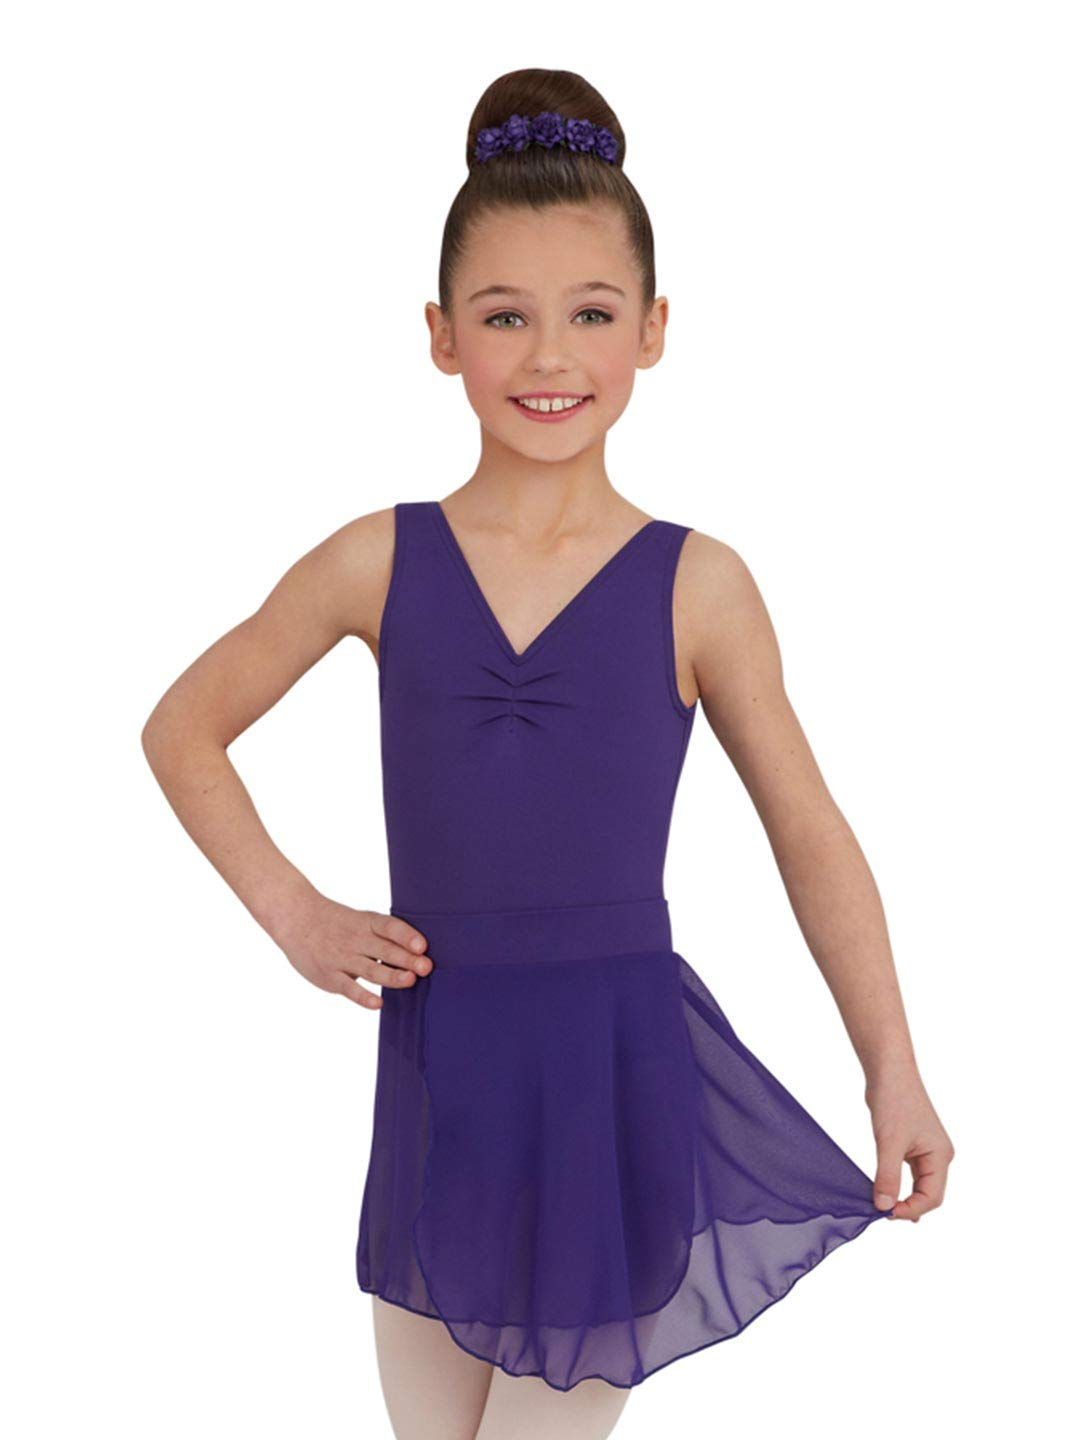 Capezio Youth Tactel Pull-On Skirt, Deep Purple-LG 12/14